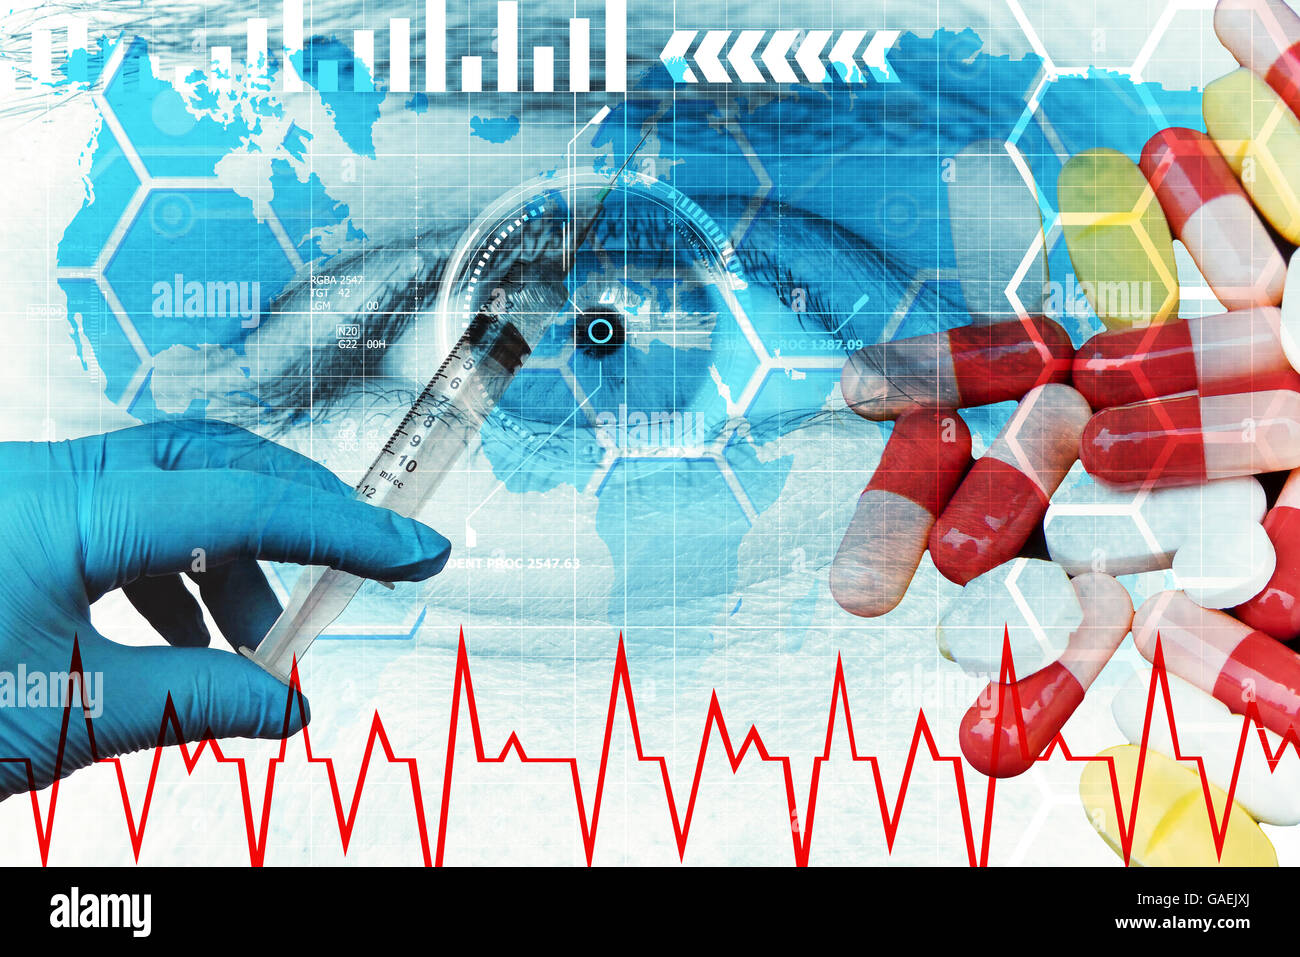 Health and biotechnology - Stock Image